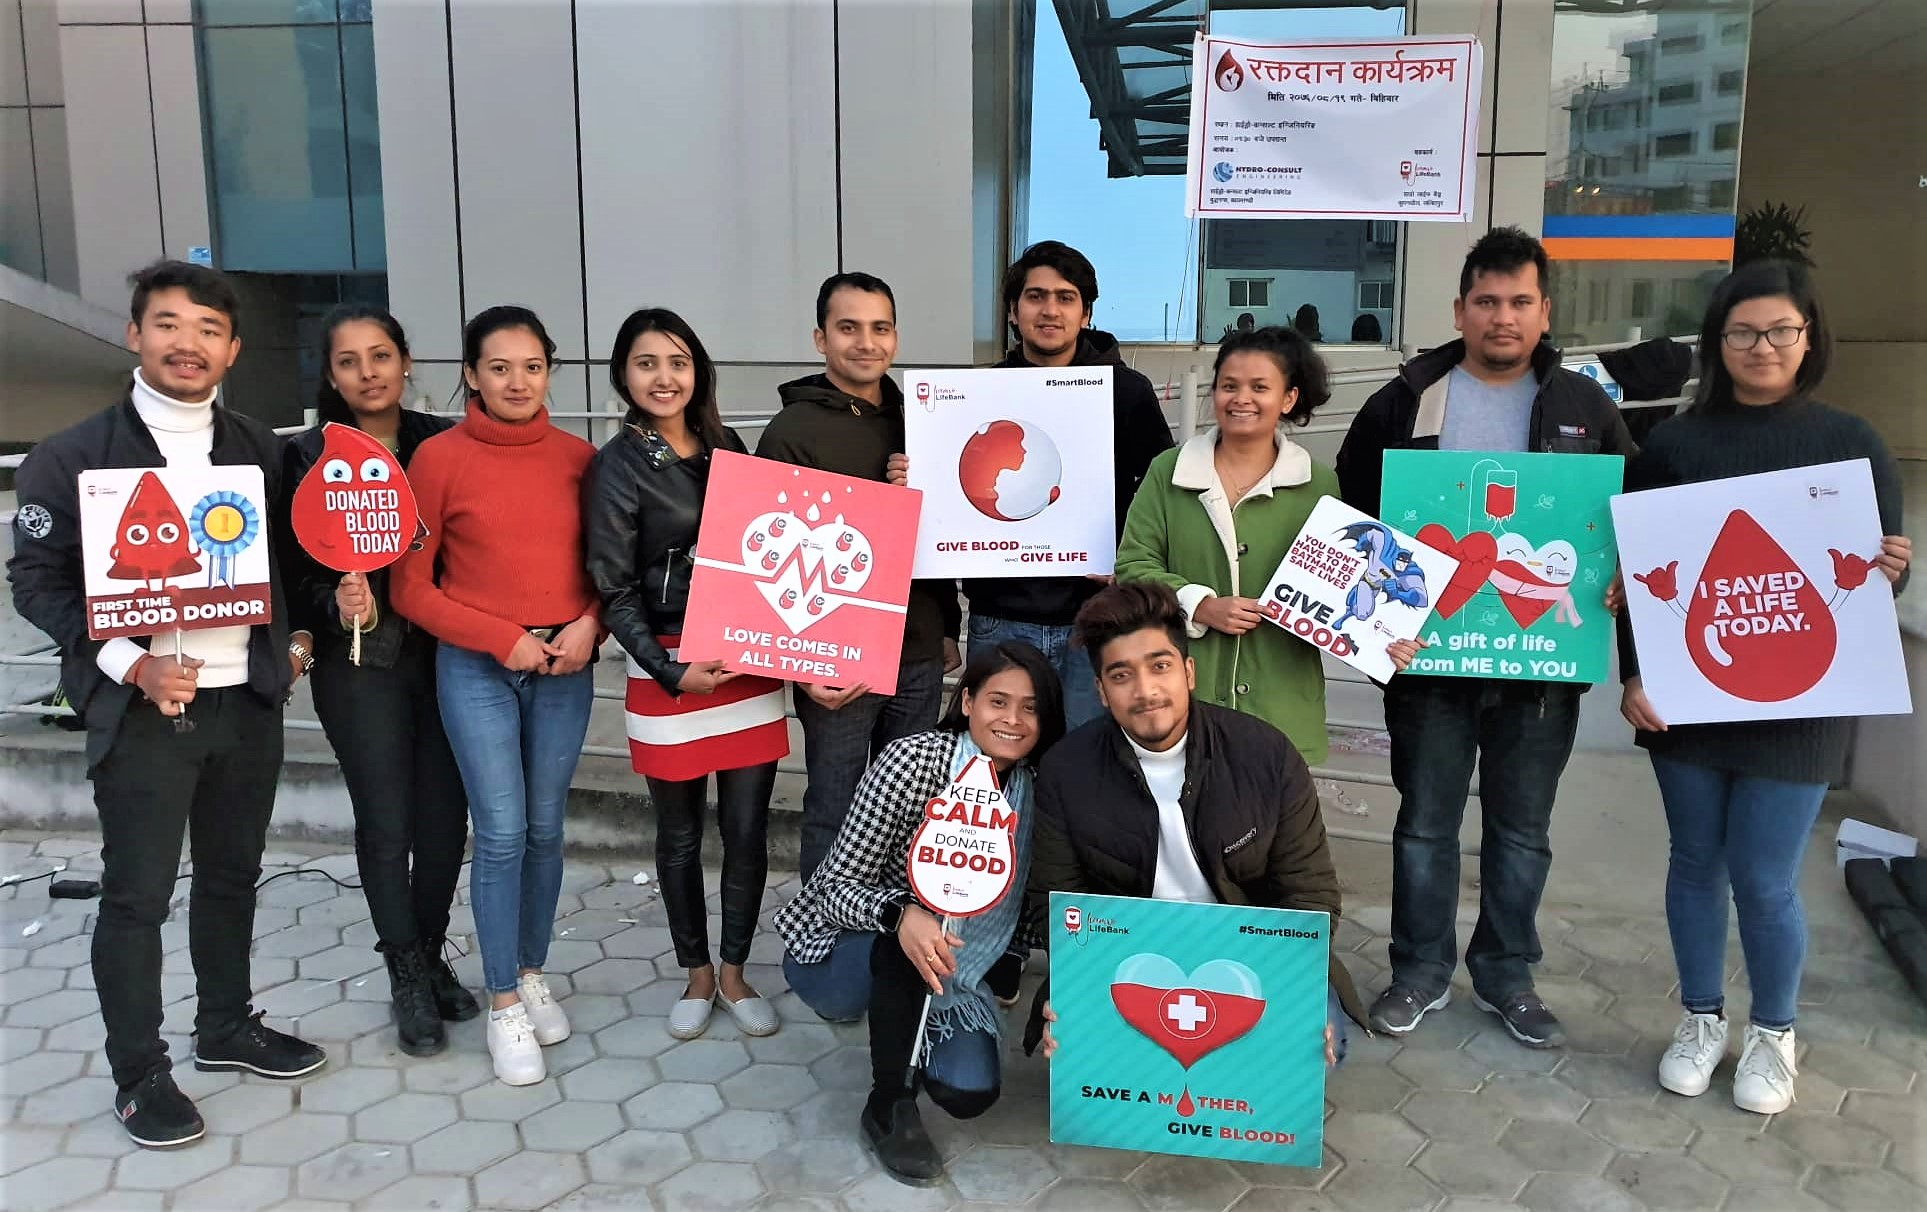 HYDROCONSULT : SMART BLOOD DRIVE